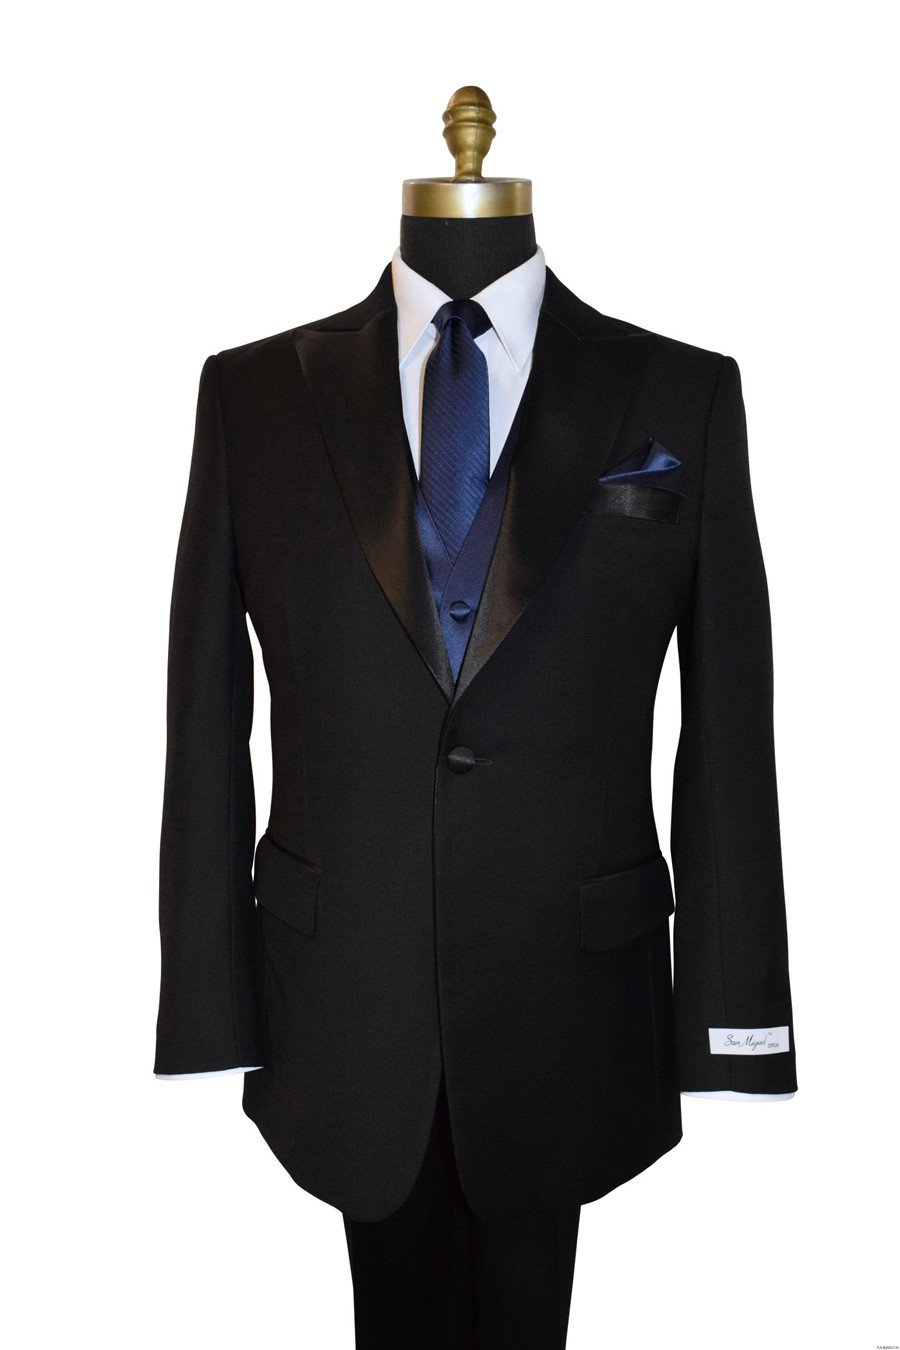 black San Miguel peak lapel tuxedo with navy blue long dress tie by San Miguel Formals